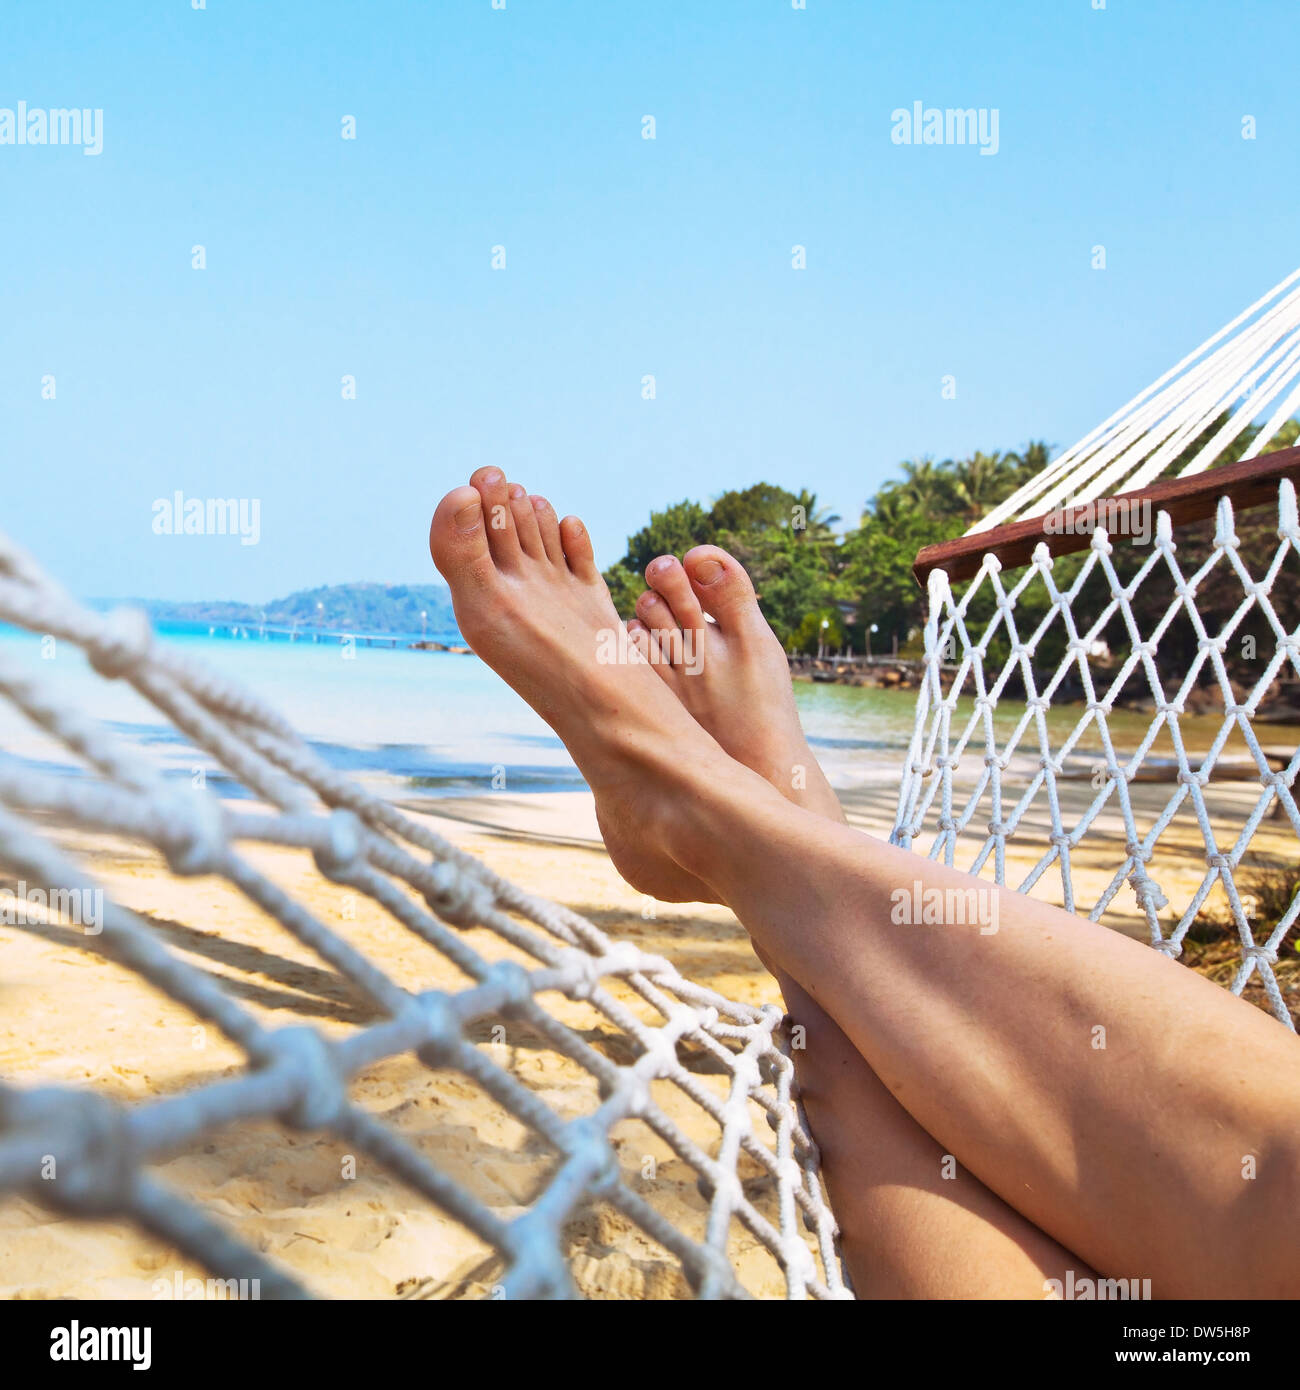 relax on the beach in hammock - Stock Image